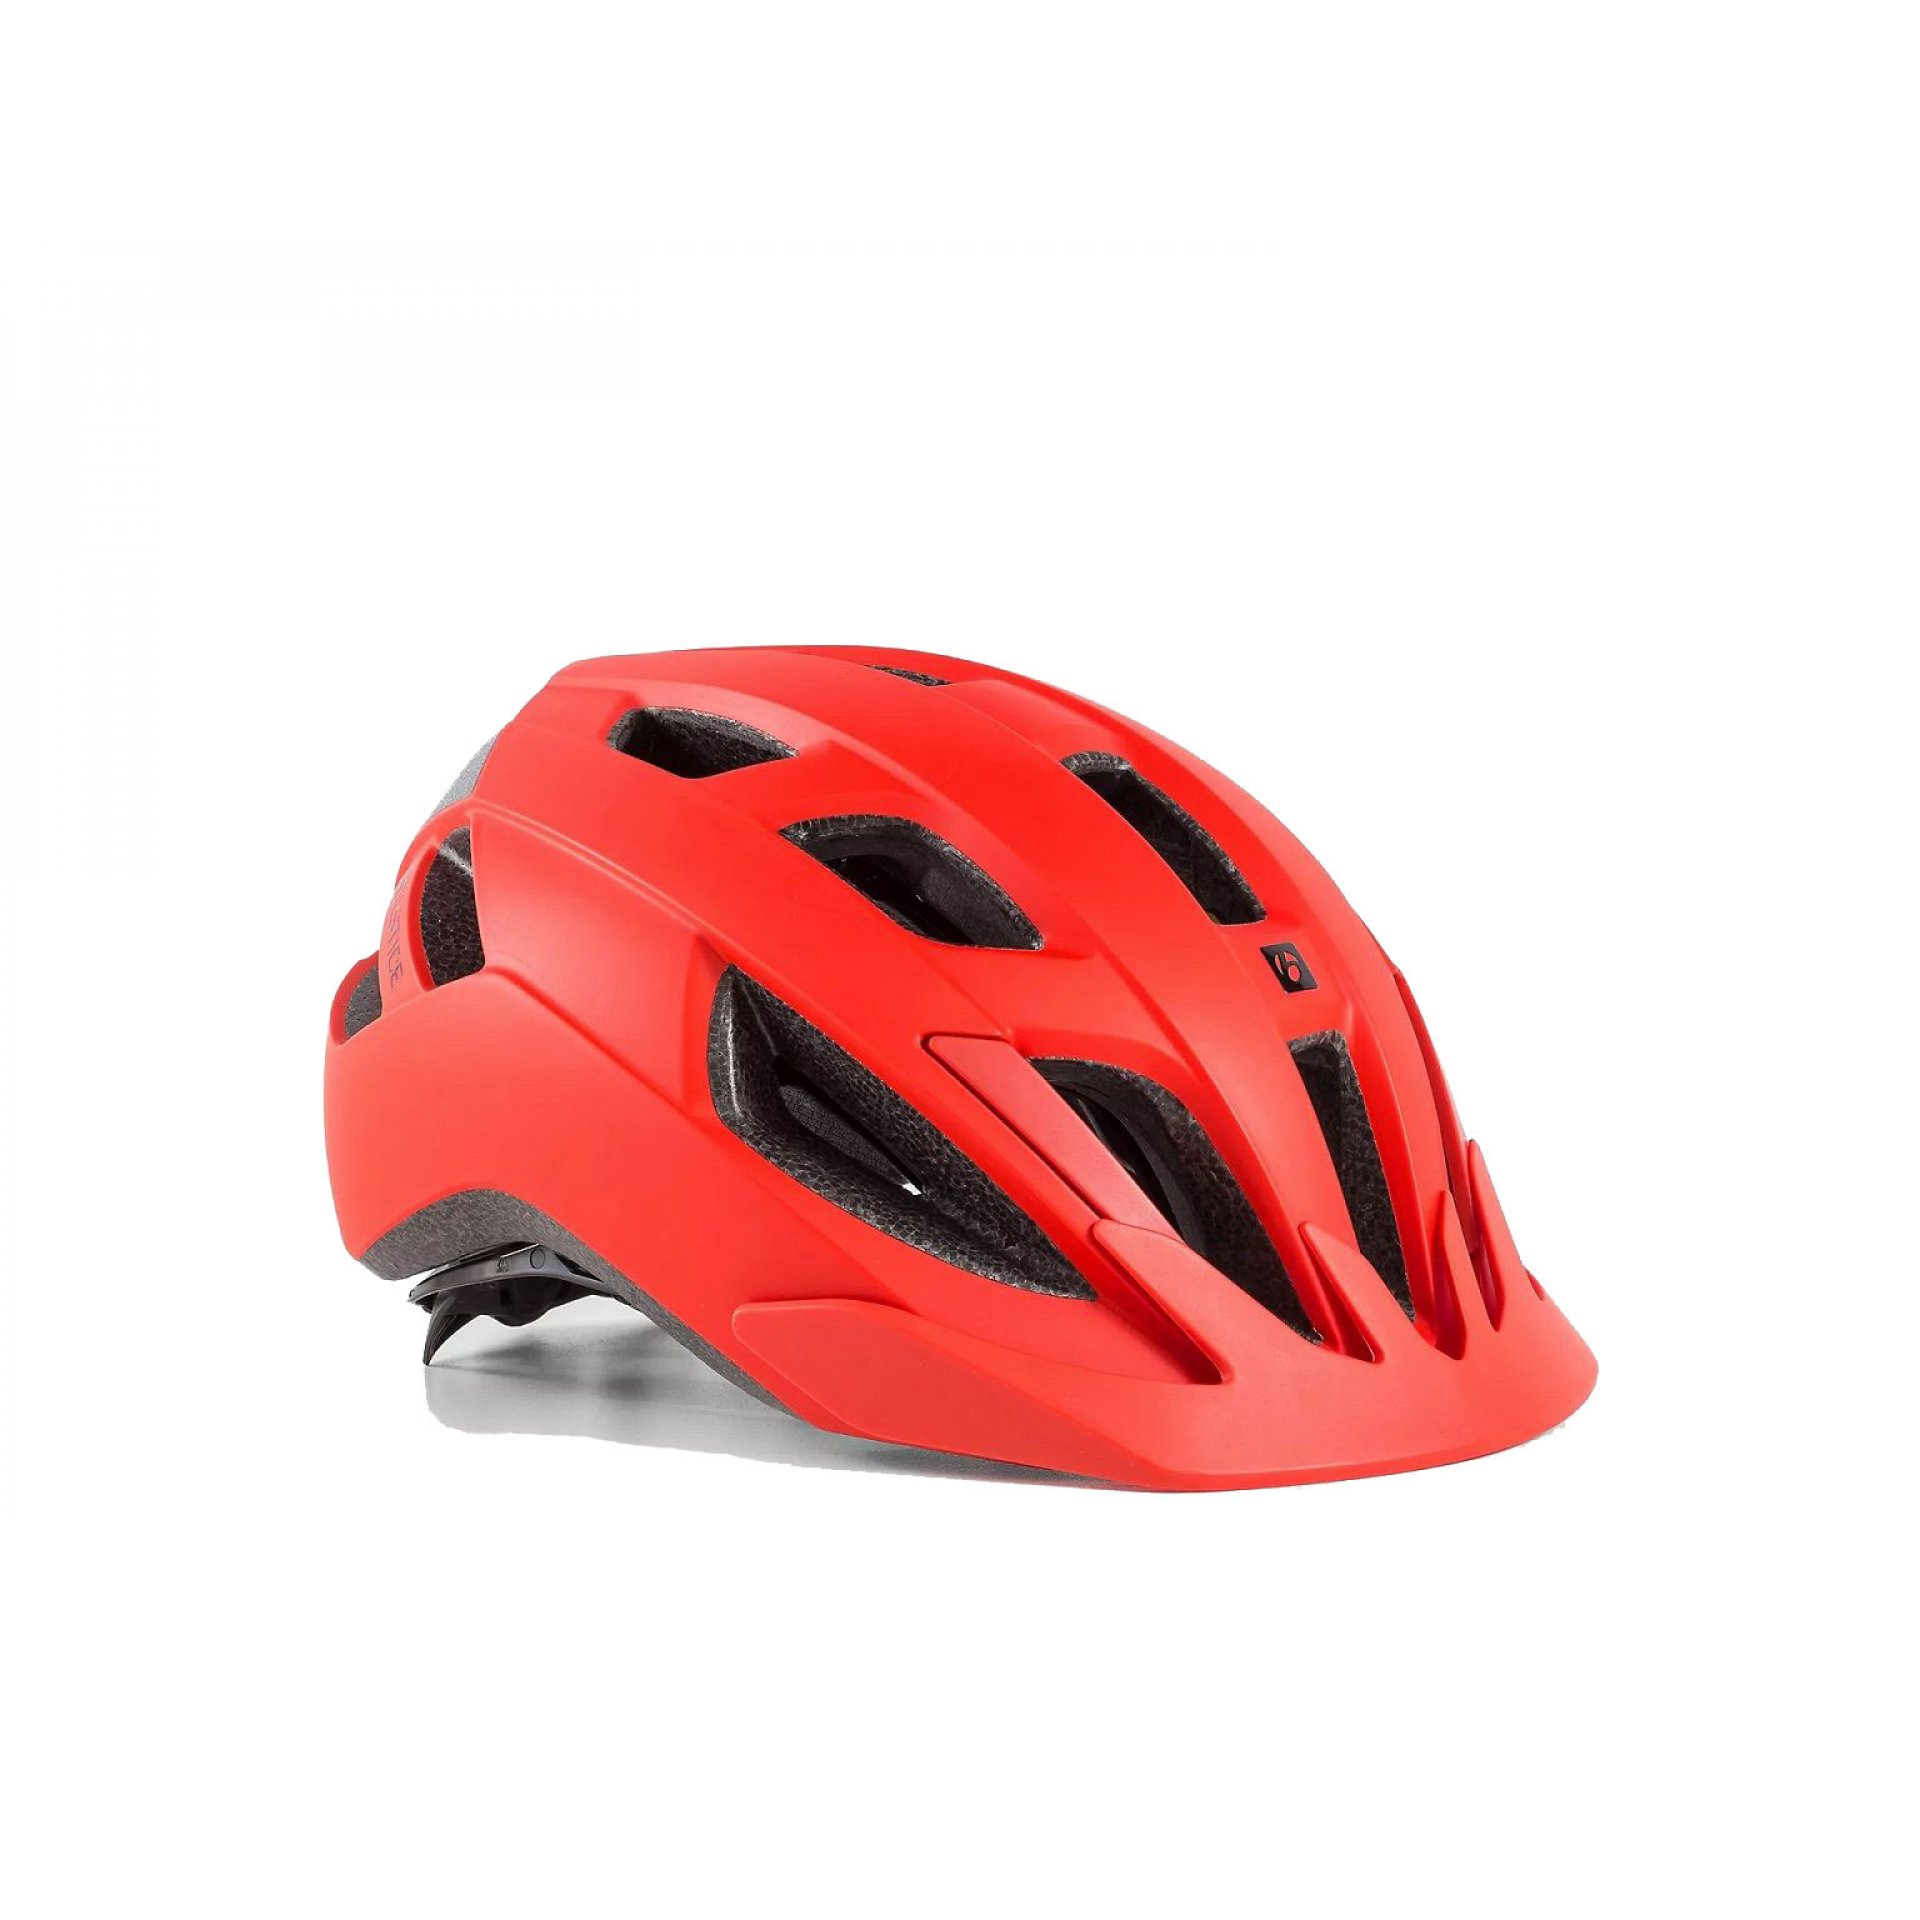 KASK ROWEROWY BONTRAGER SOLSTICE MIPS VIPER RED